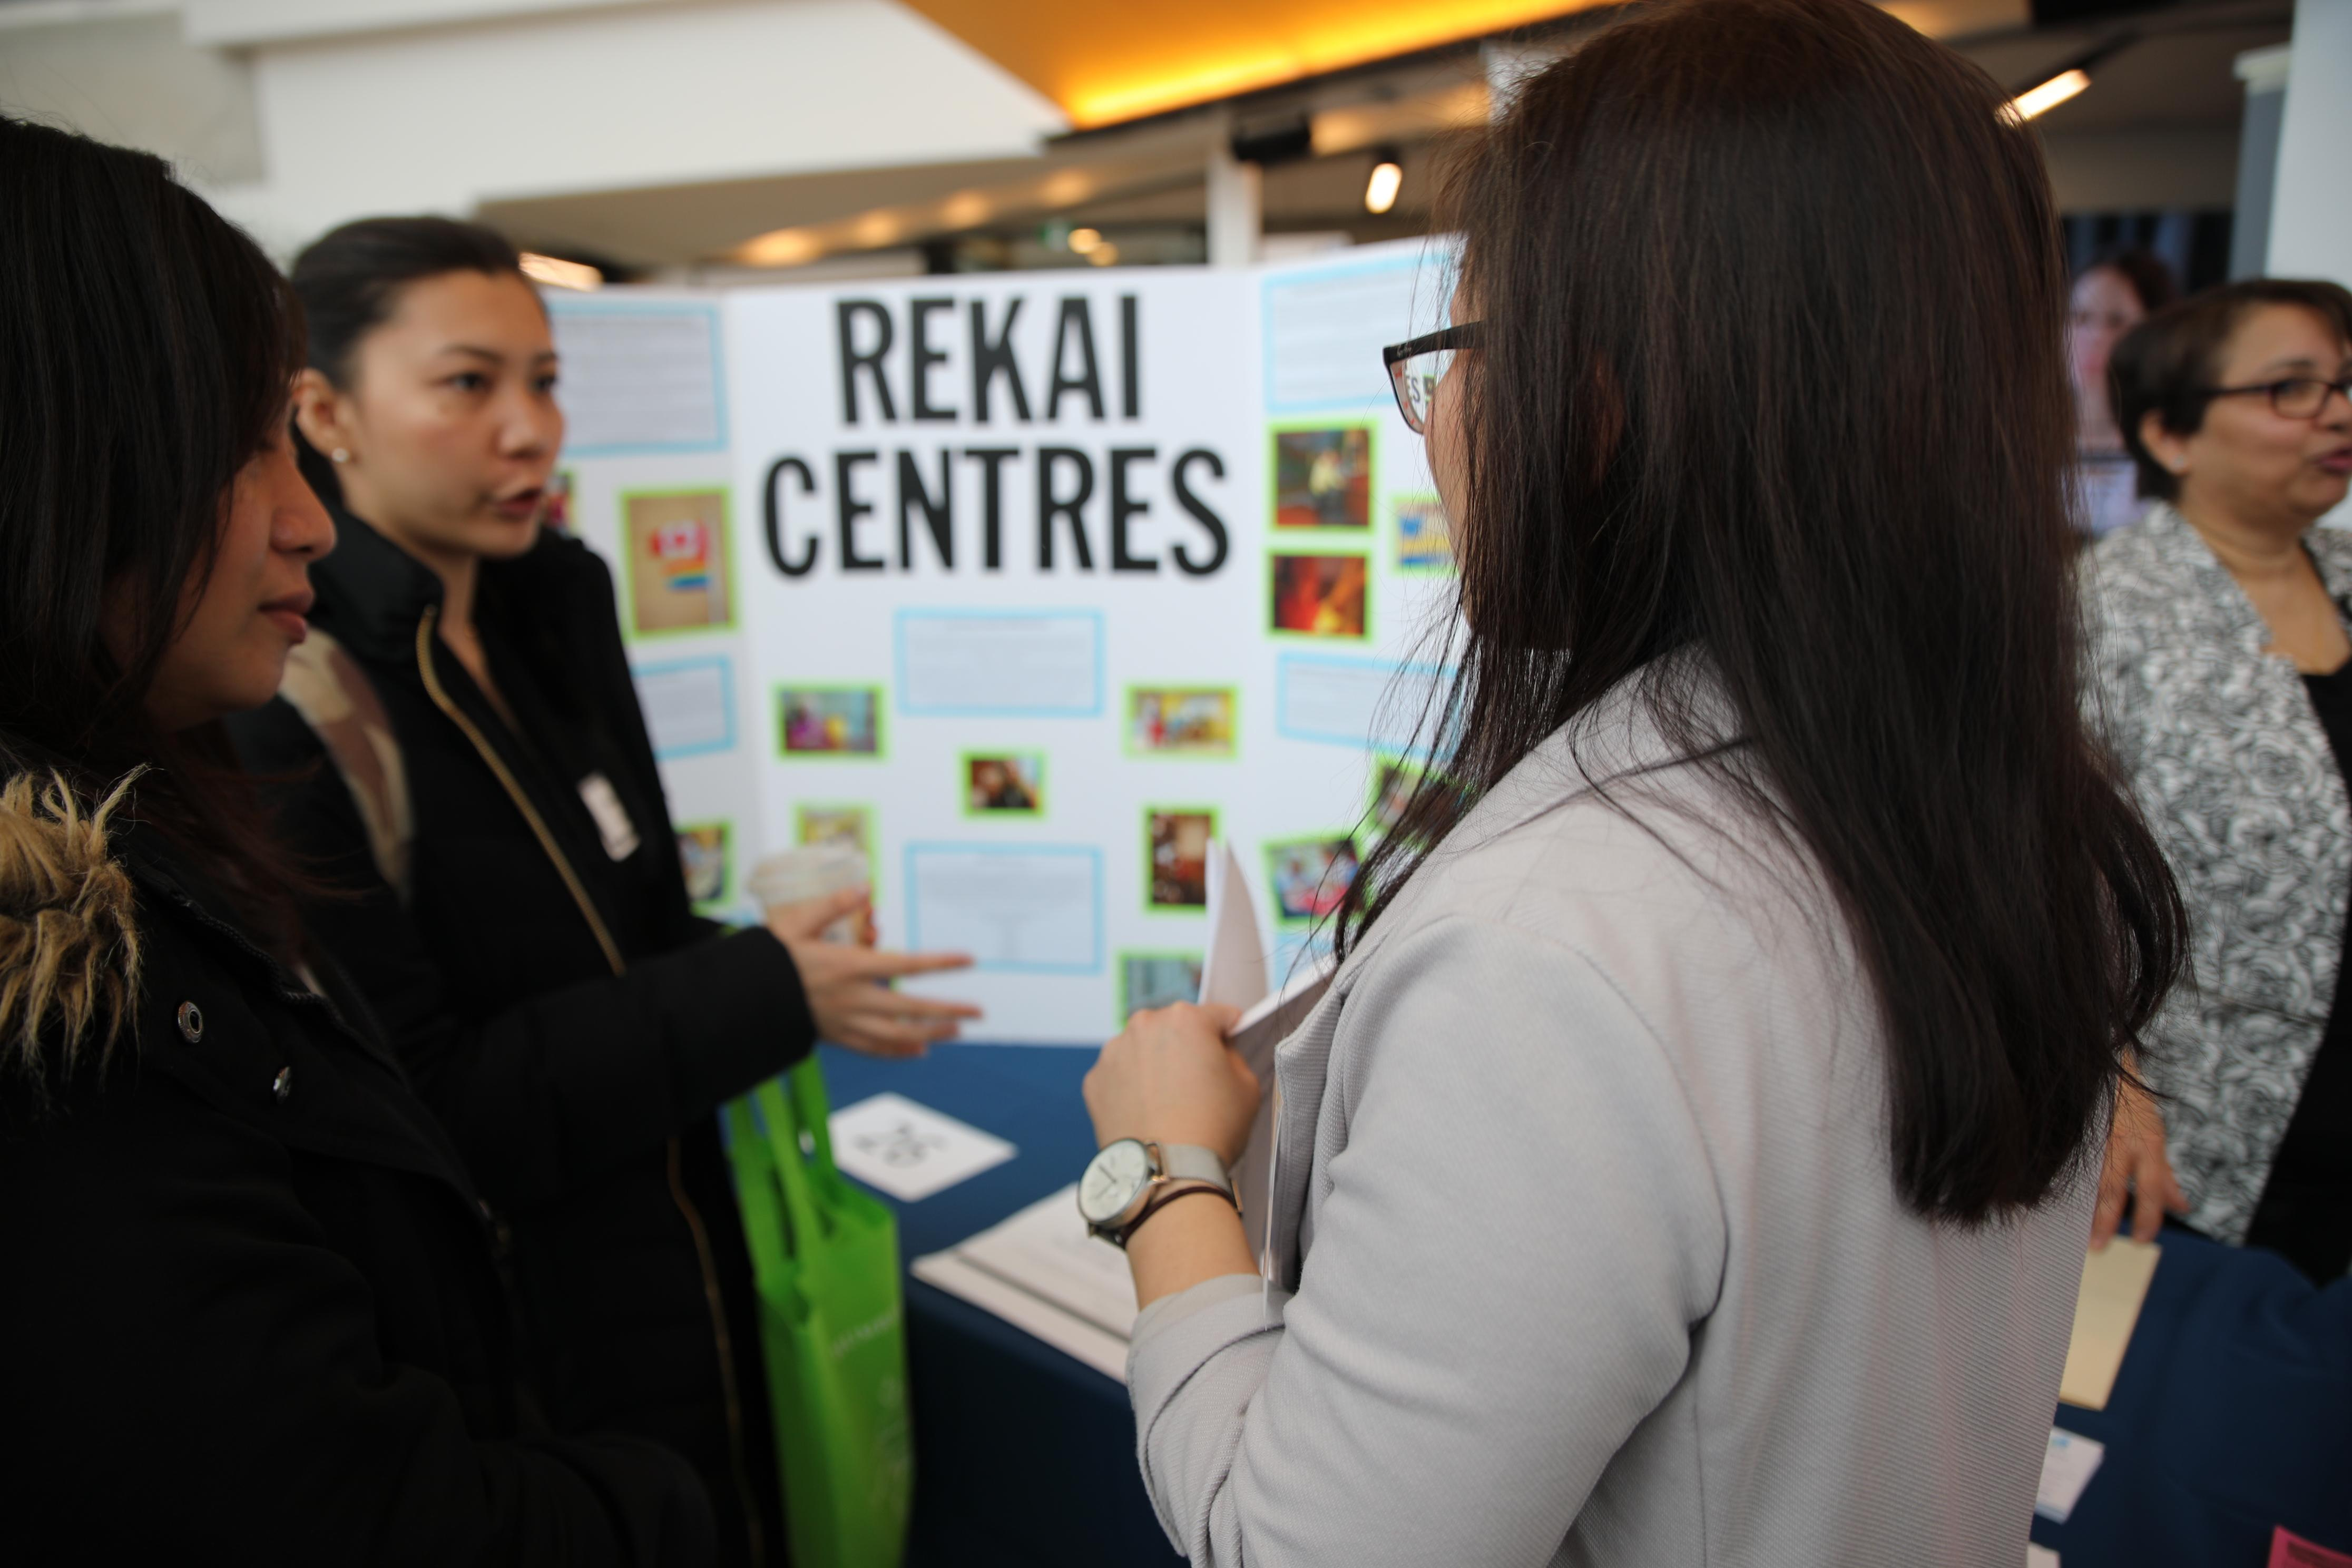 Students learn about Rekai Centres at the long term care and community job fair